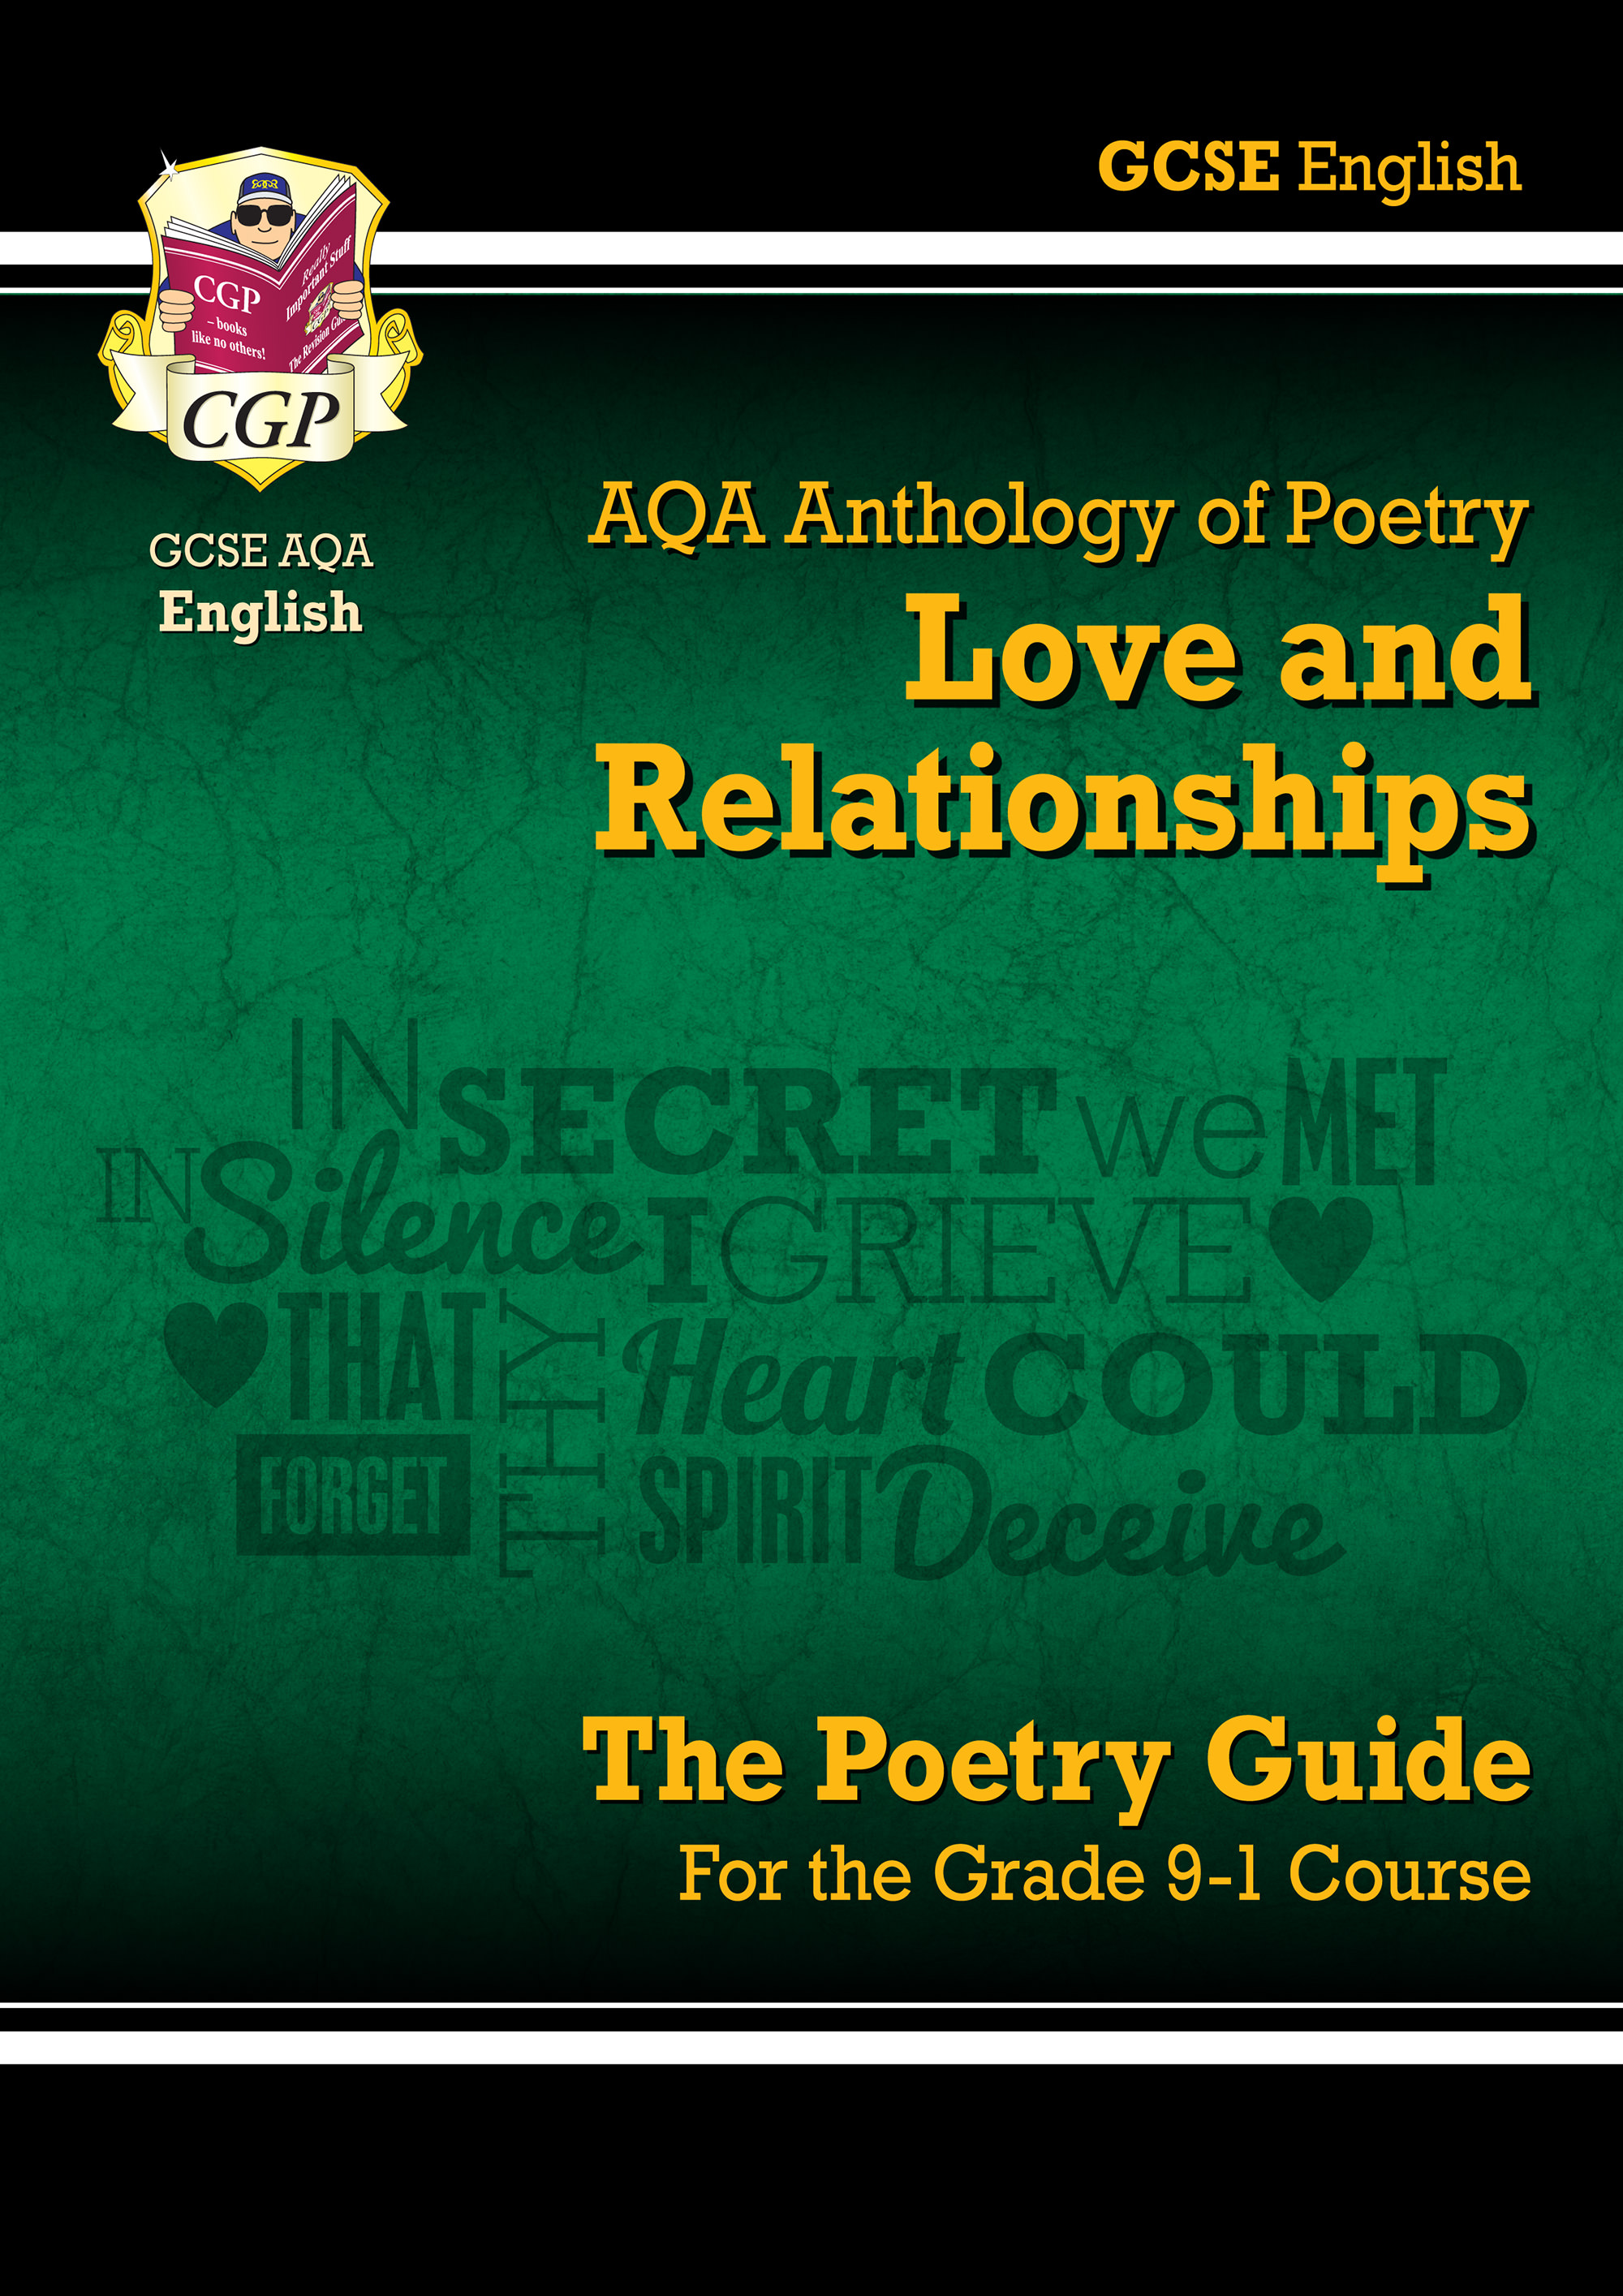 ARHR43 - New GCSE English Literature AQA Poetry Guide: Love & Relationships Anthology - the Grade 9-